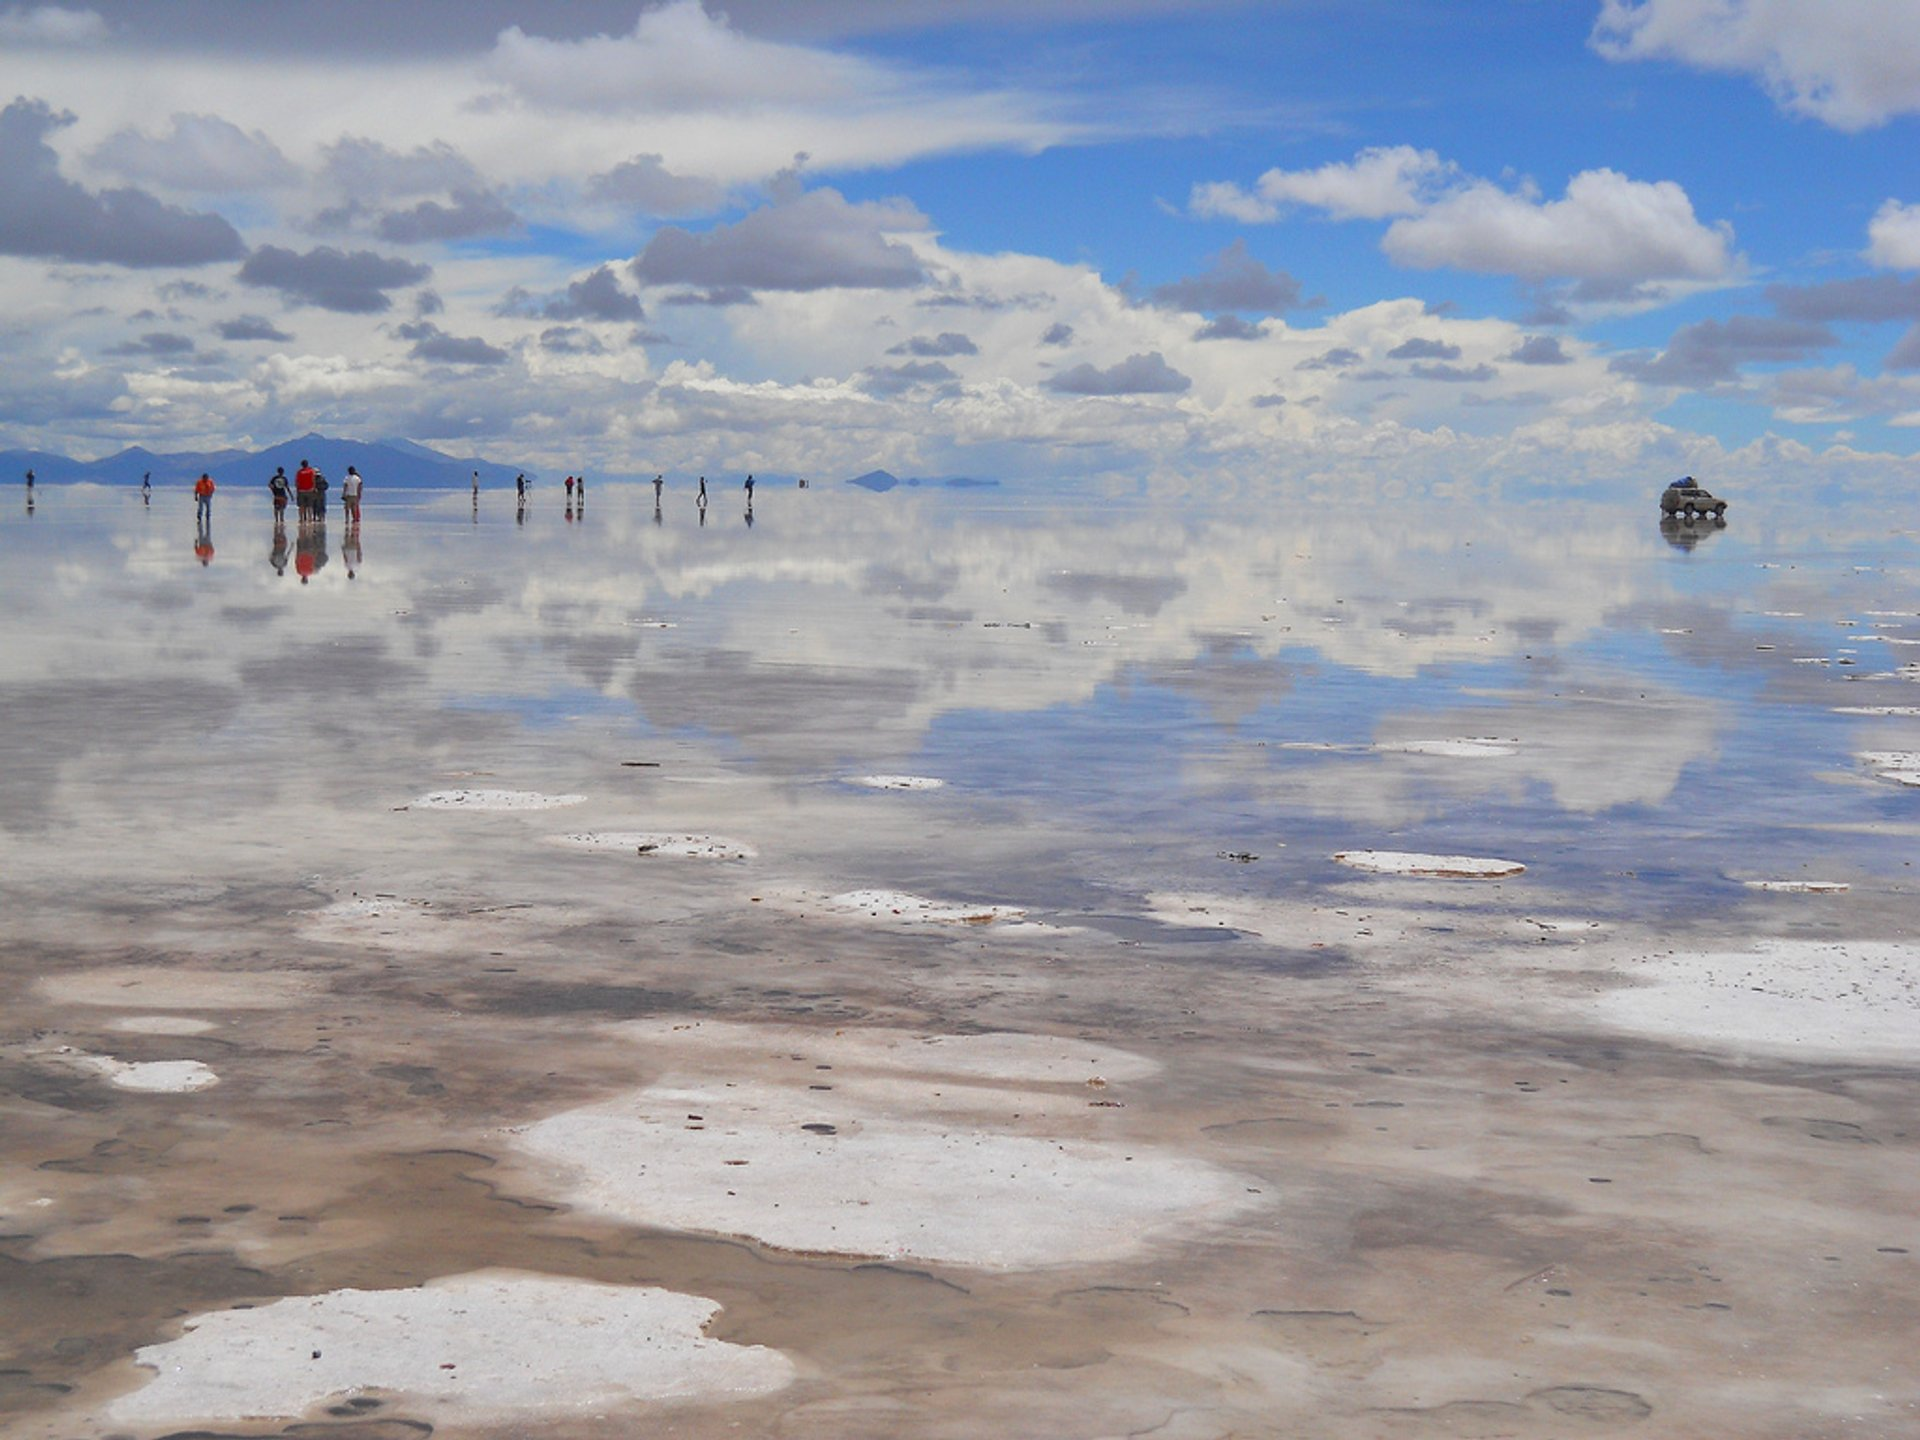 Best time to see Lake at Salt Flats or Salar de Uyuni in Bolivia 2020